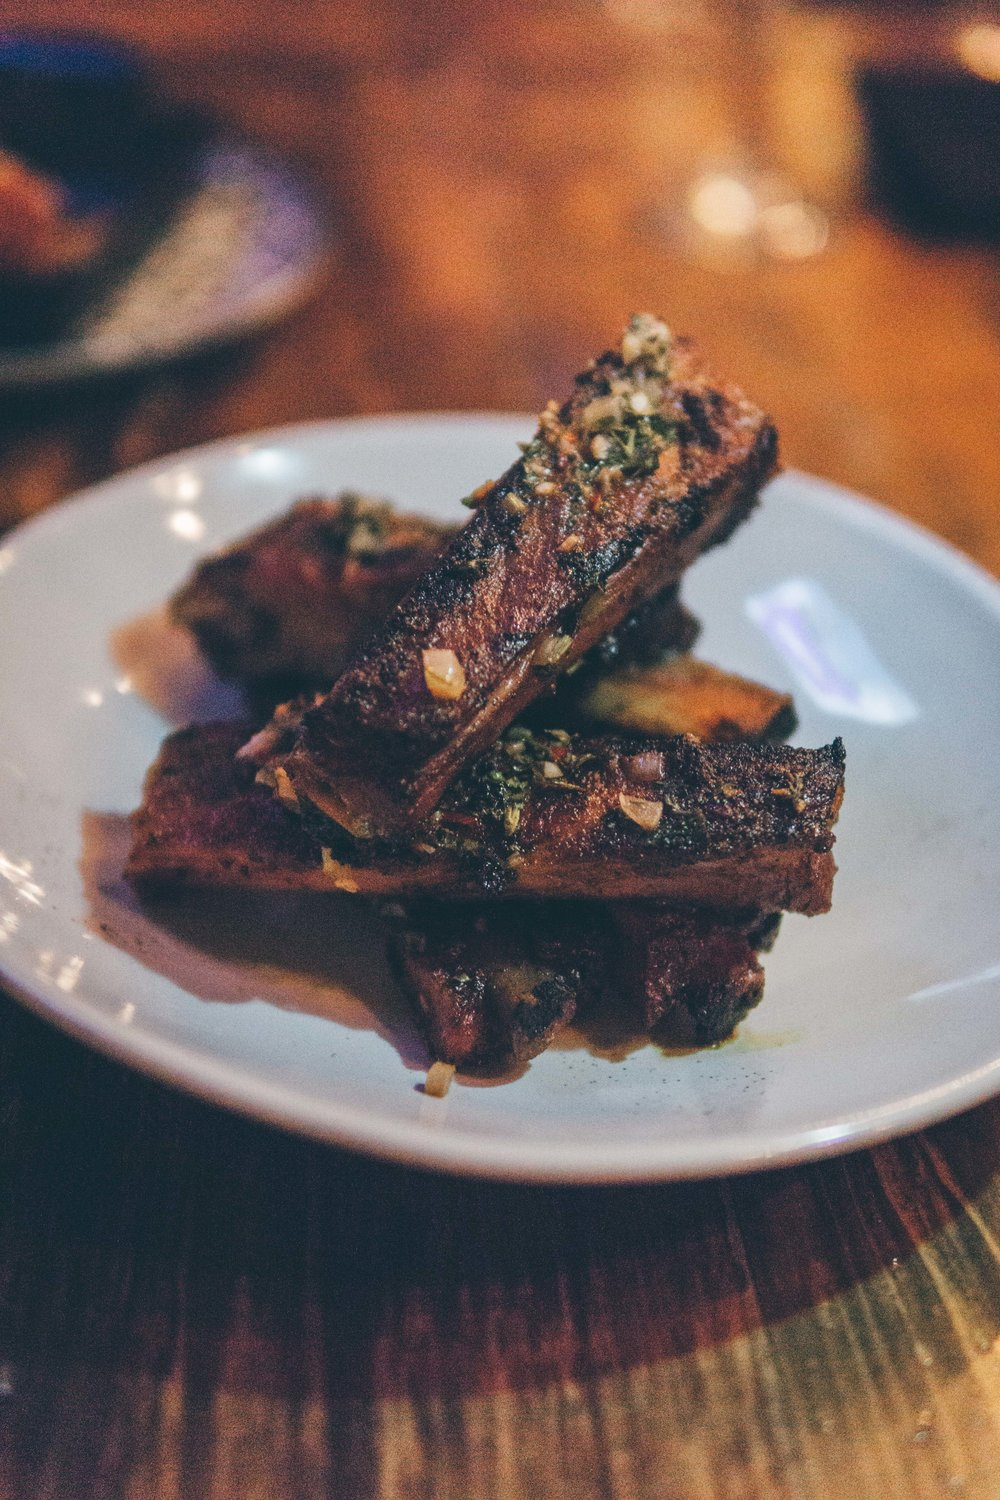 Grilled St. Louis Pork Ribs with Chimichurri Sauce